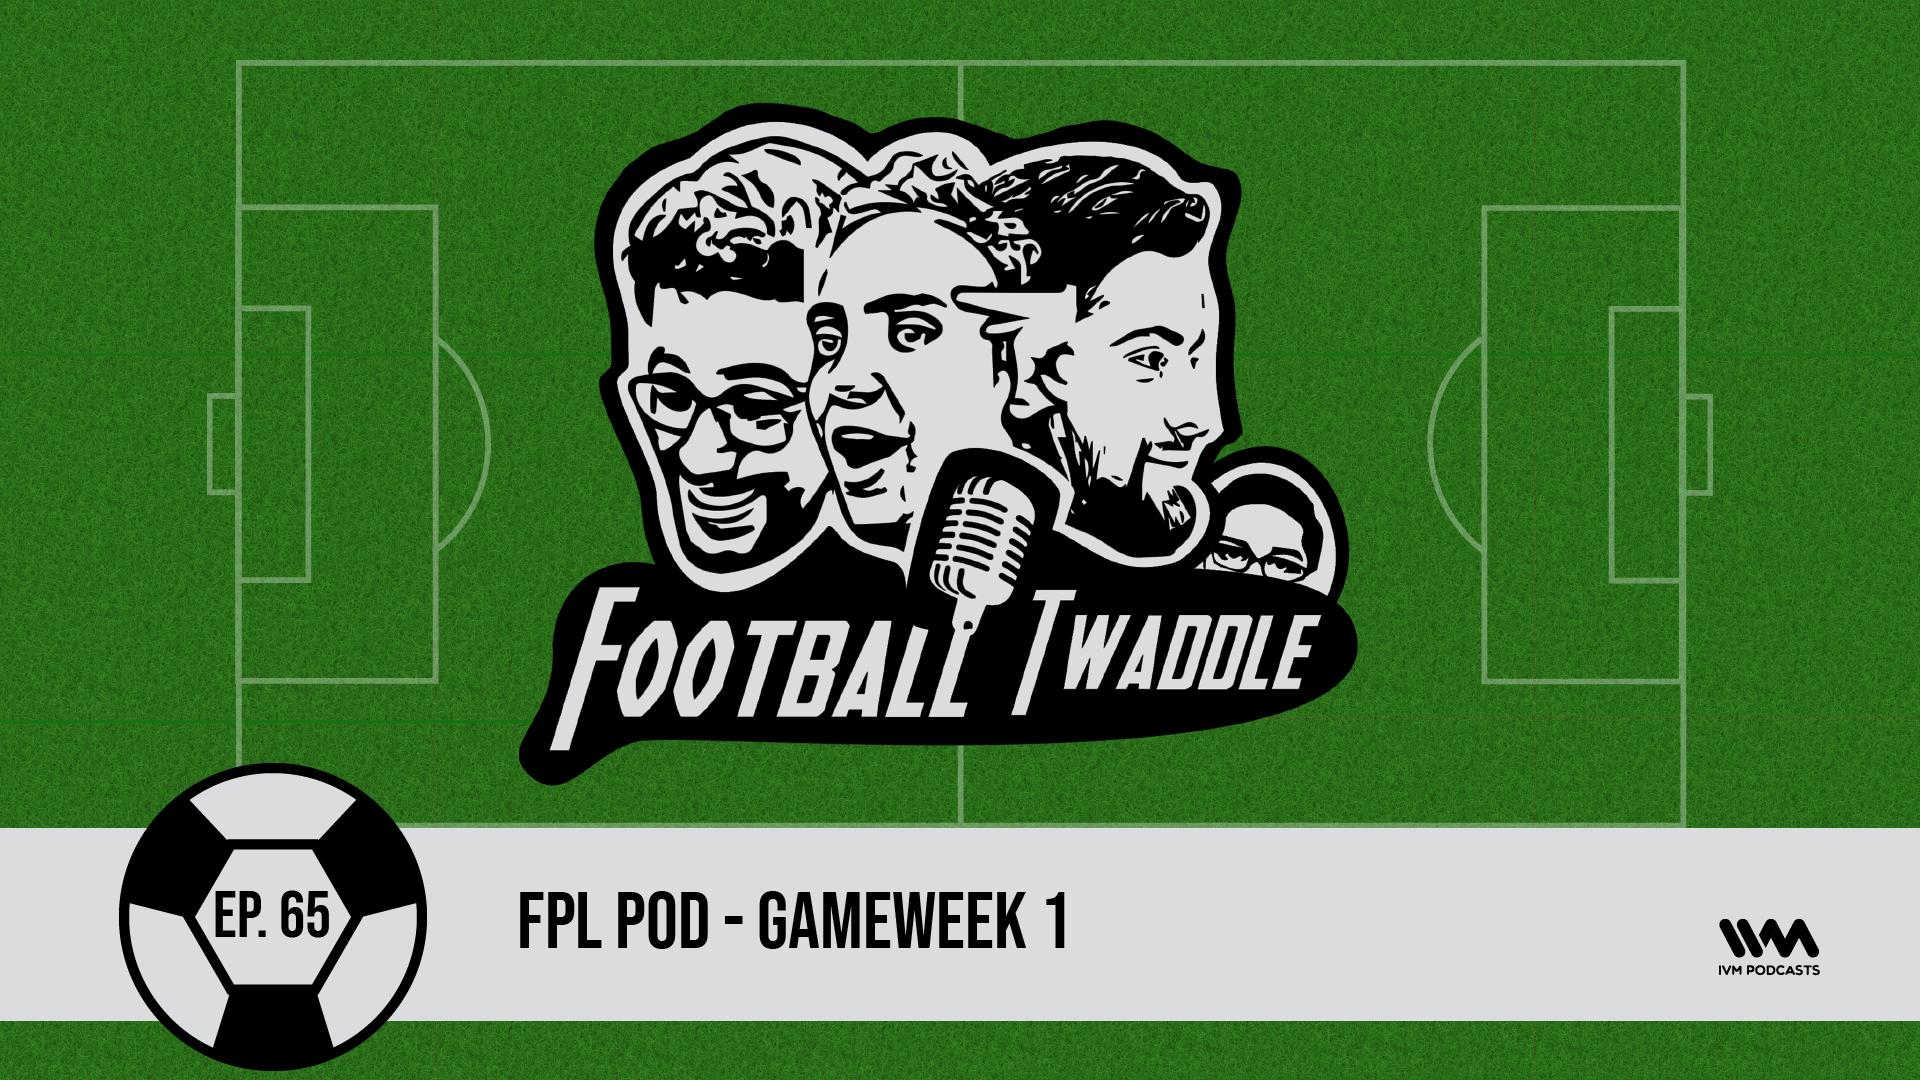 FootballTwaddleEpisode65.png